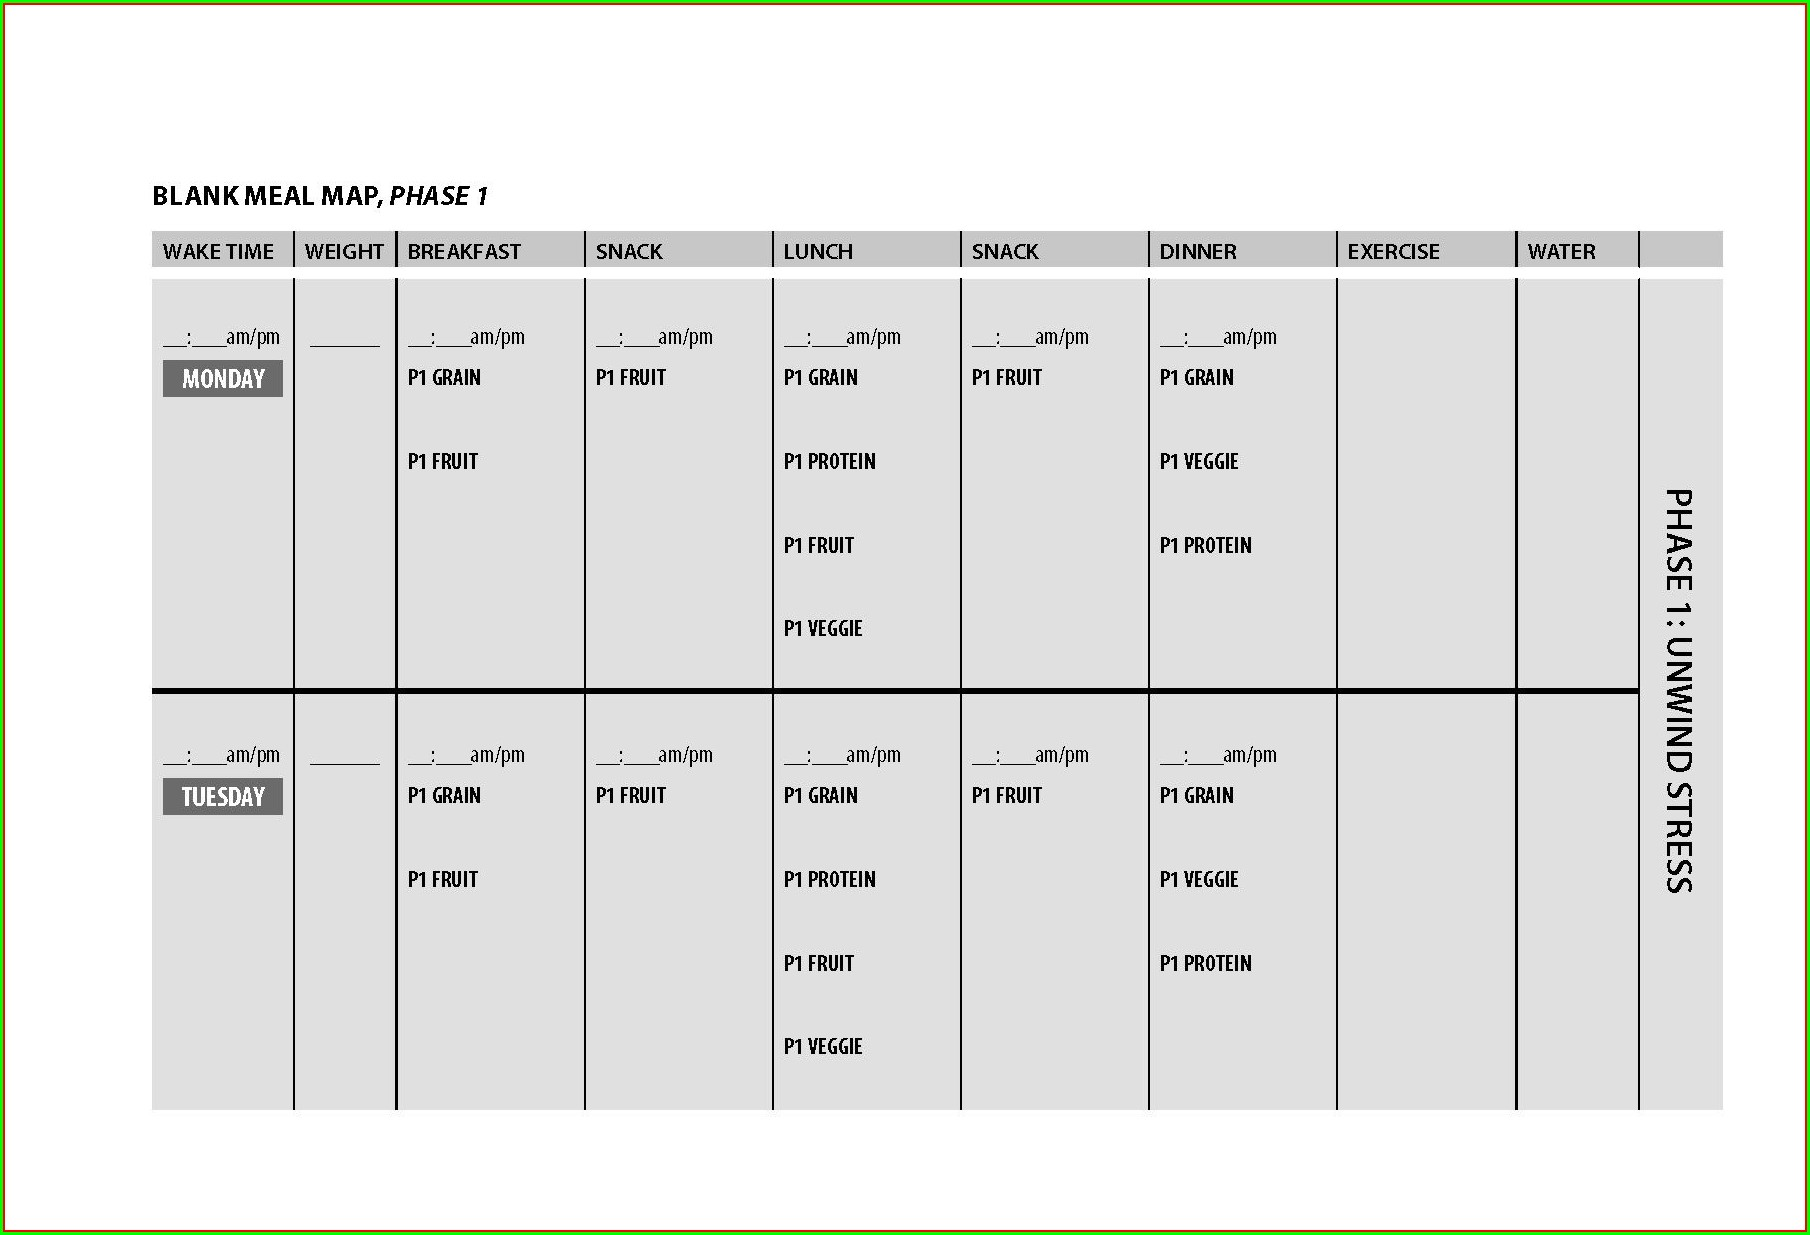 Fast Metabolism Diet Phase 1 Meal Map